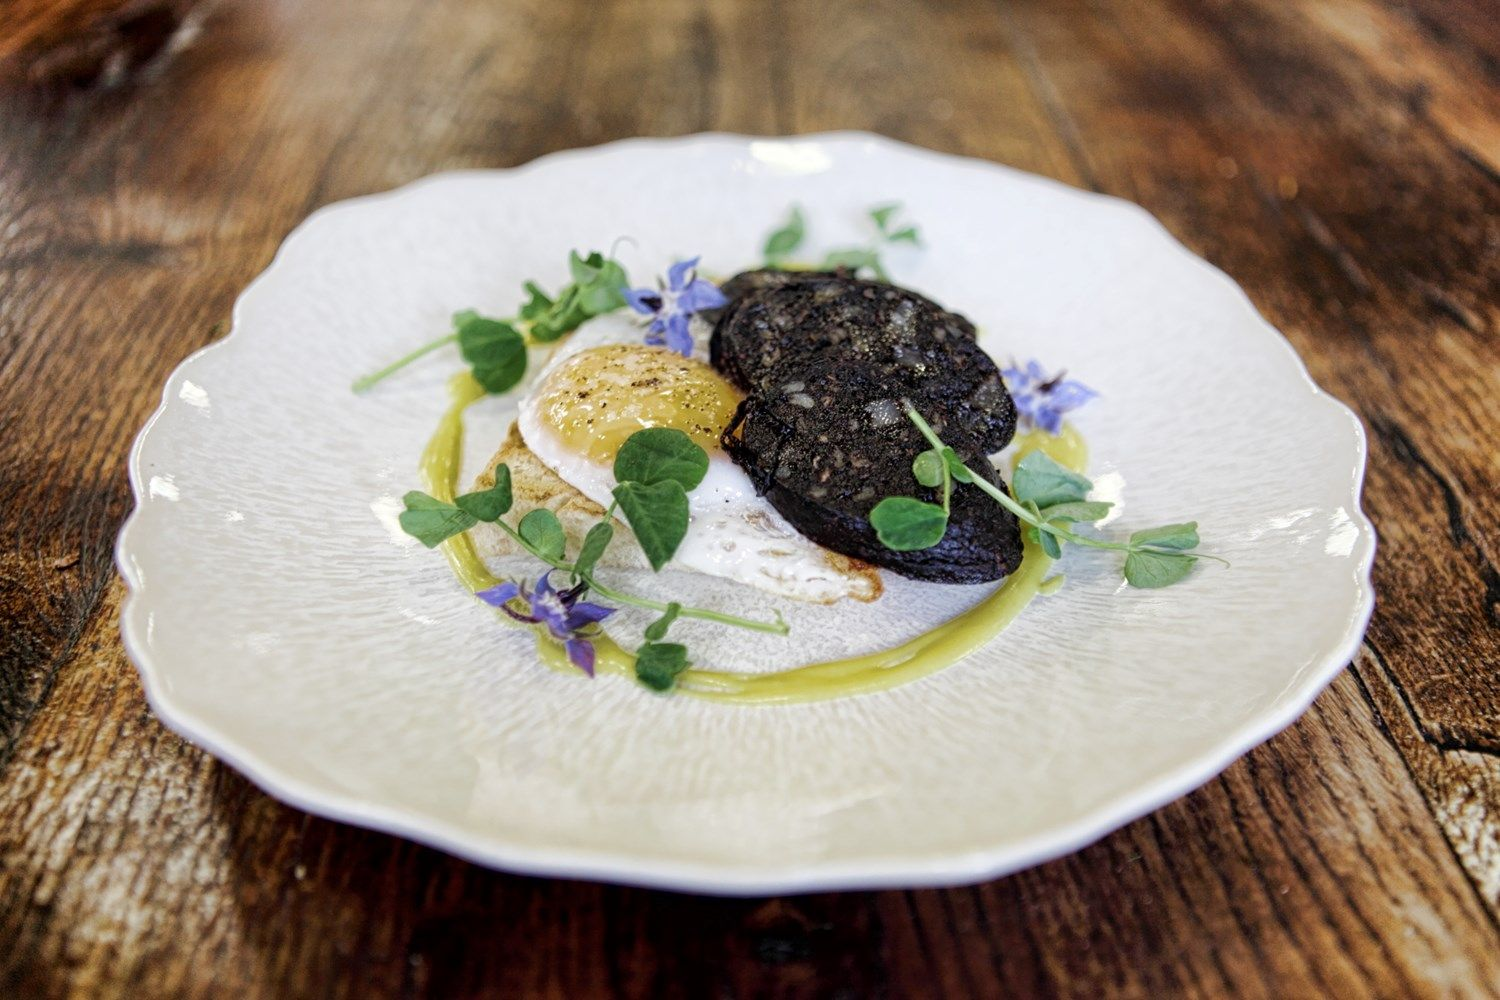 Tatchbury_Farm_Black_Pudding_&_Hampshire_Duck_Egg.jpg